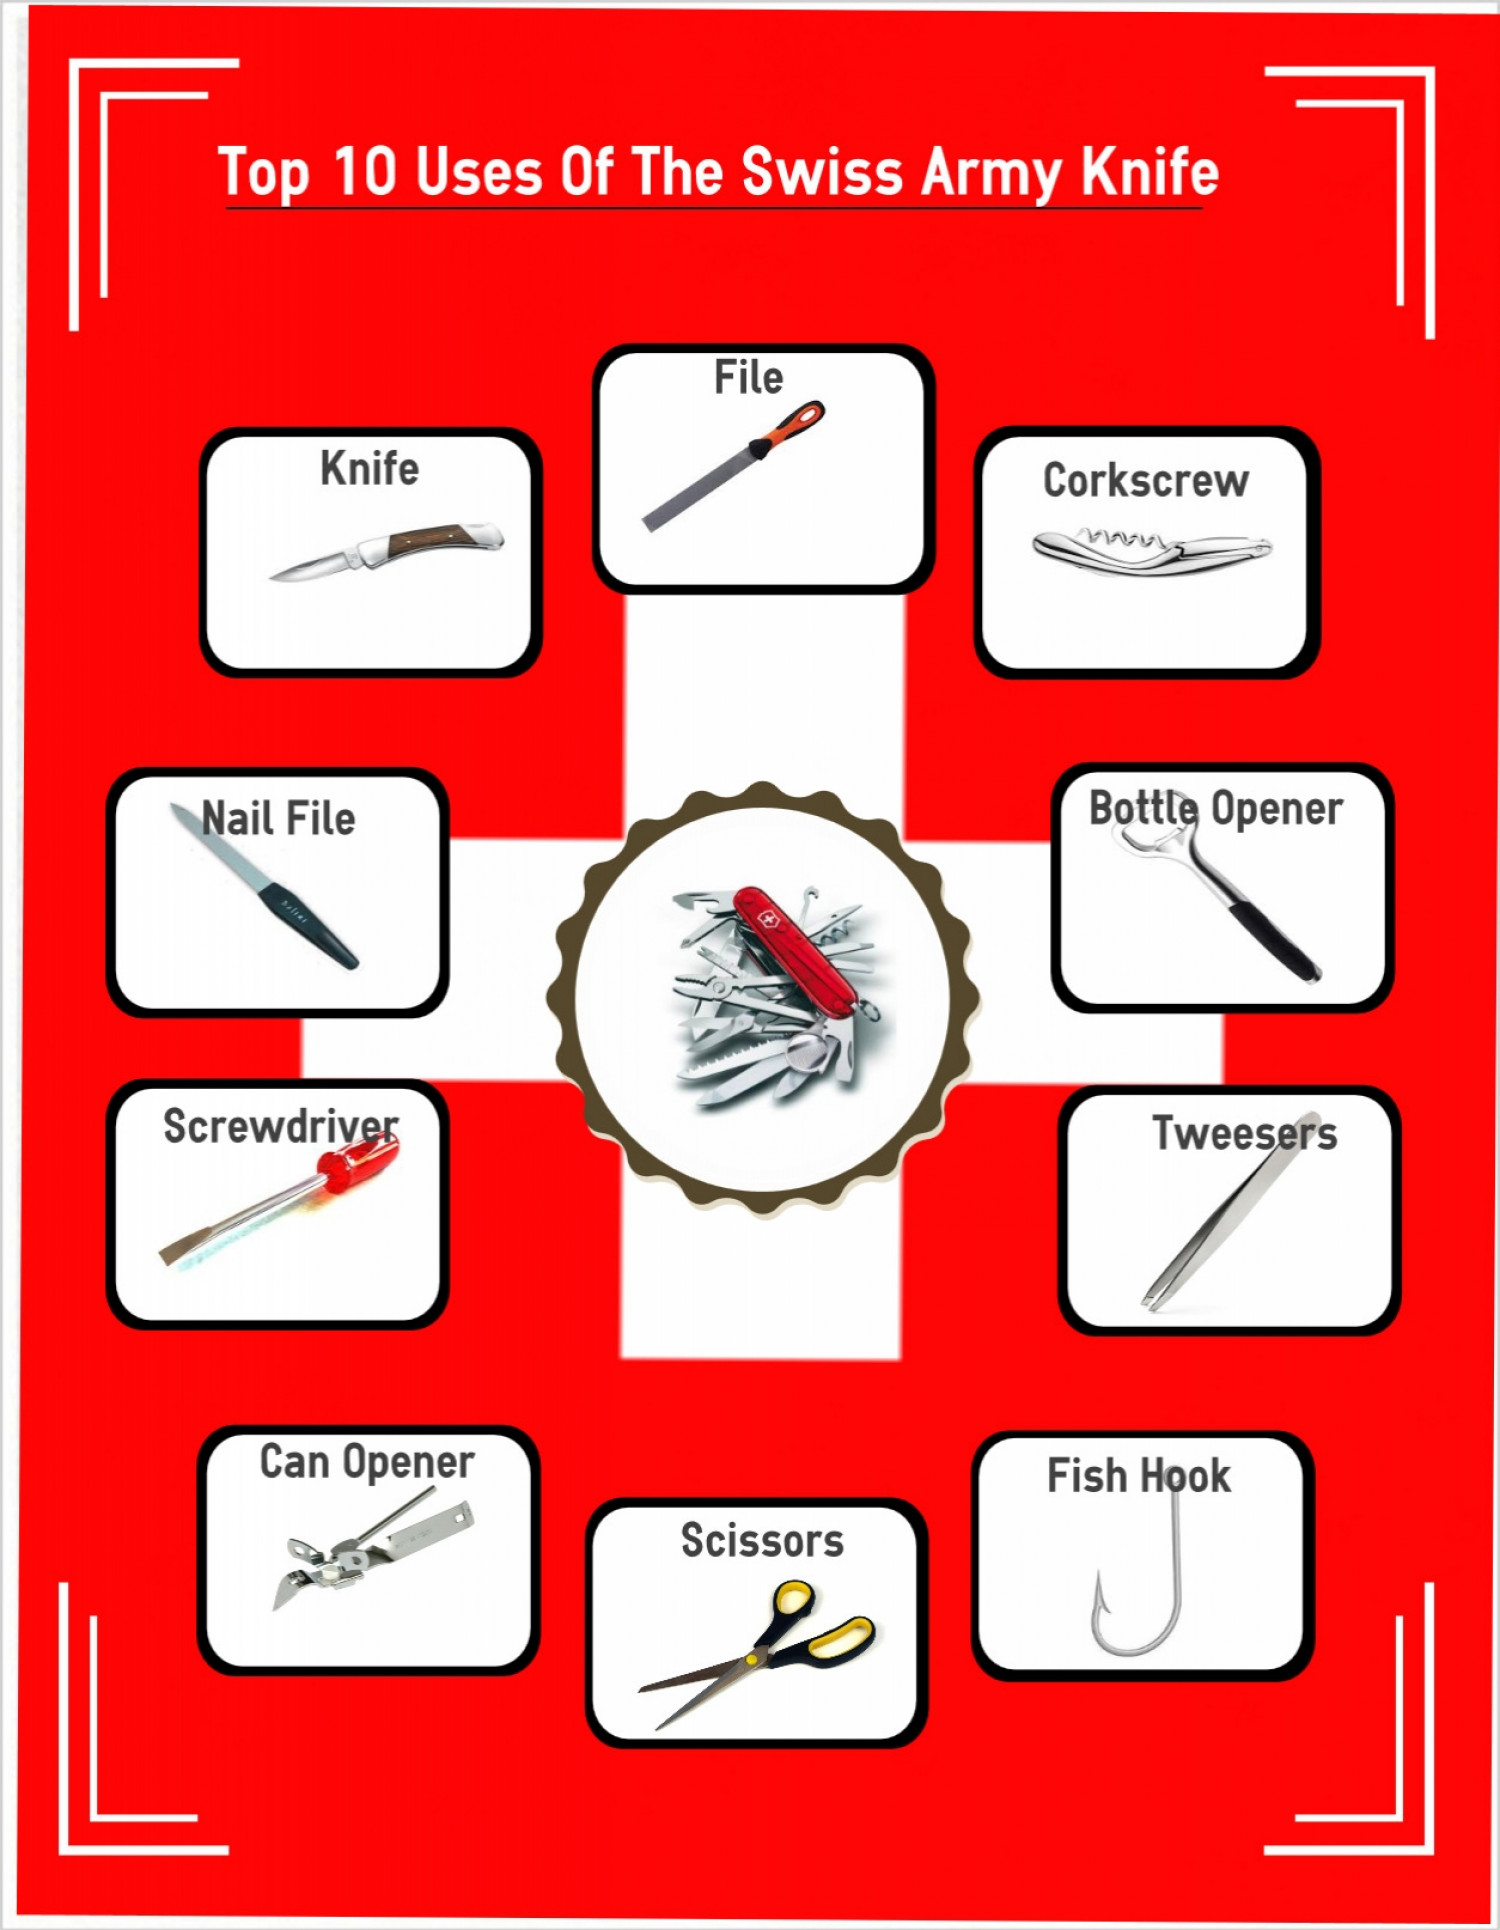 10 uses of the swiss army knife Infographic